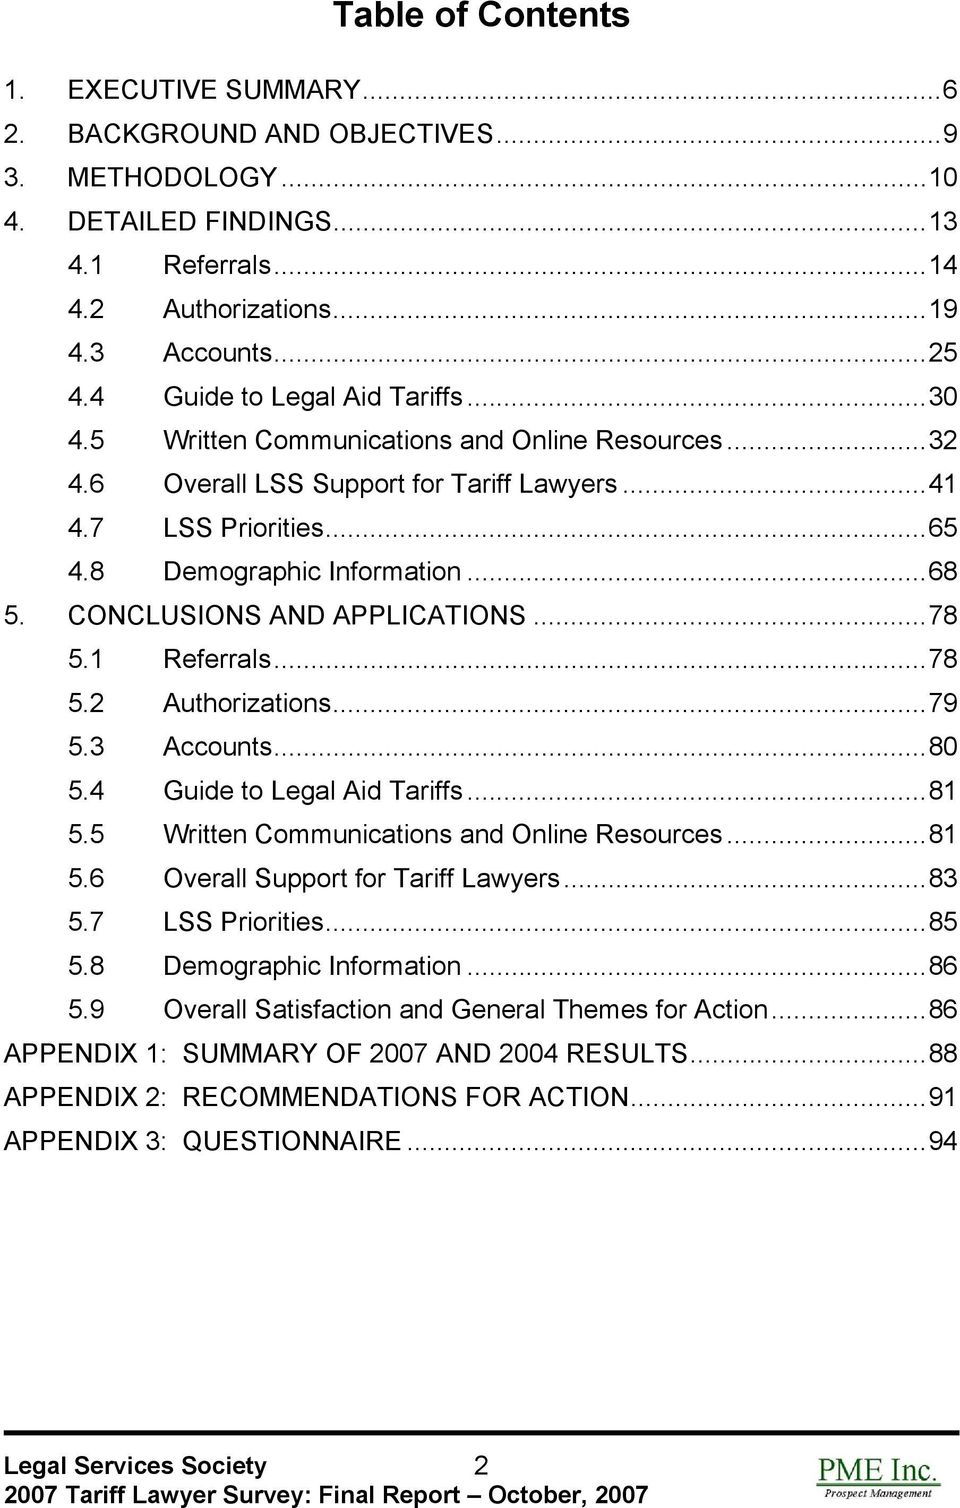 CONCLUSIONS AND APPLICATIONS...78 5.1 Referrals...78 5.2 Authorizations...79 5.3 Accounts...80 5.4 Guide to Legal Aid Tariffs...81 5.5 Written Communications and Online Resources...81 5.6 Overall Support for Tariff Lawyers.